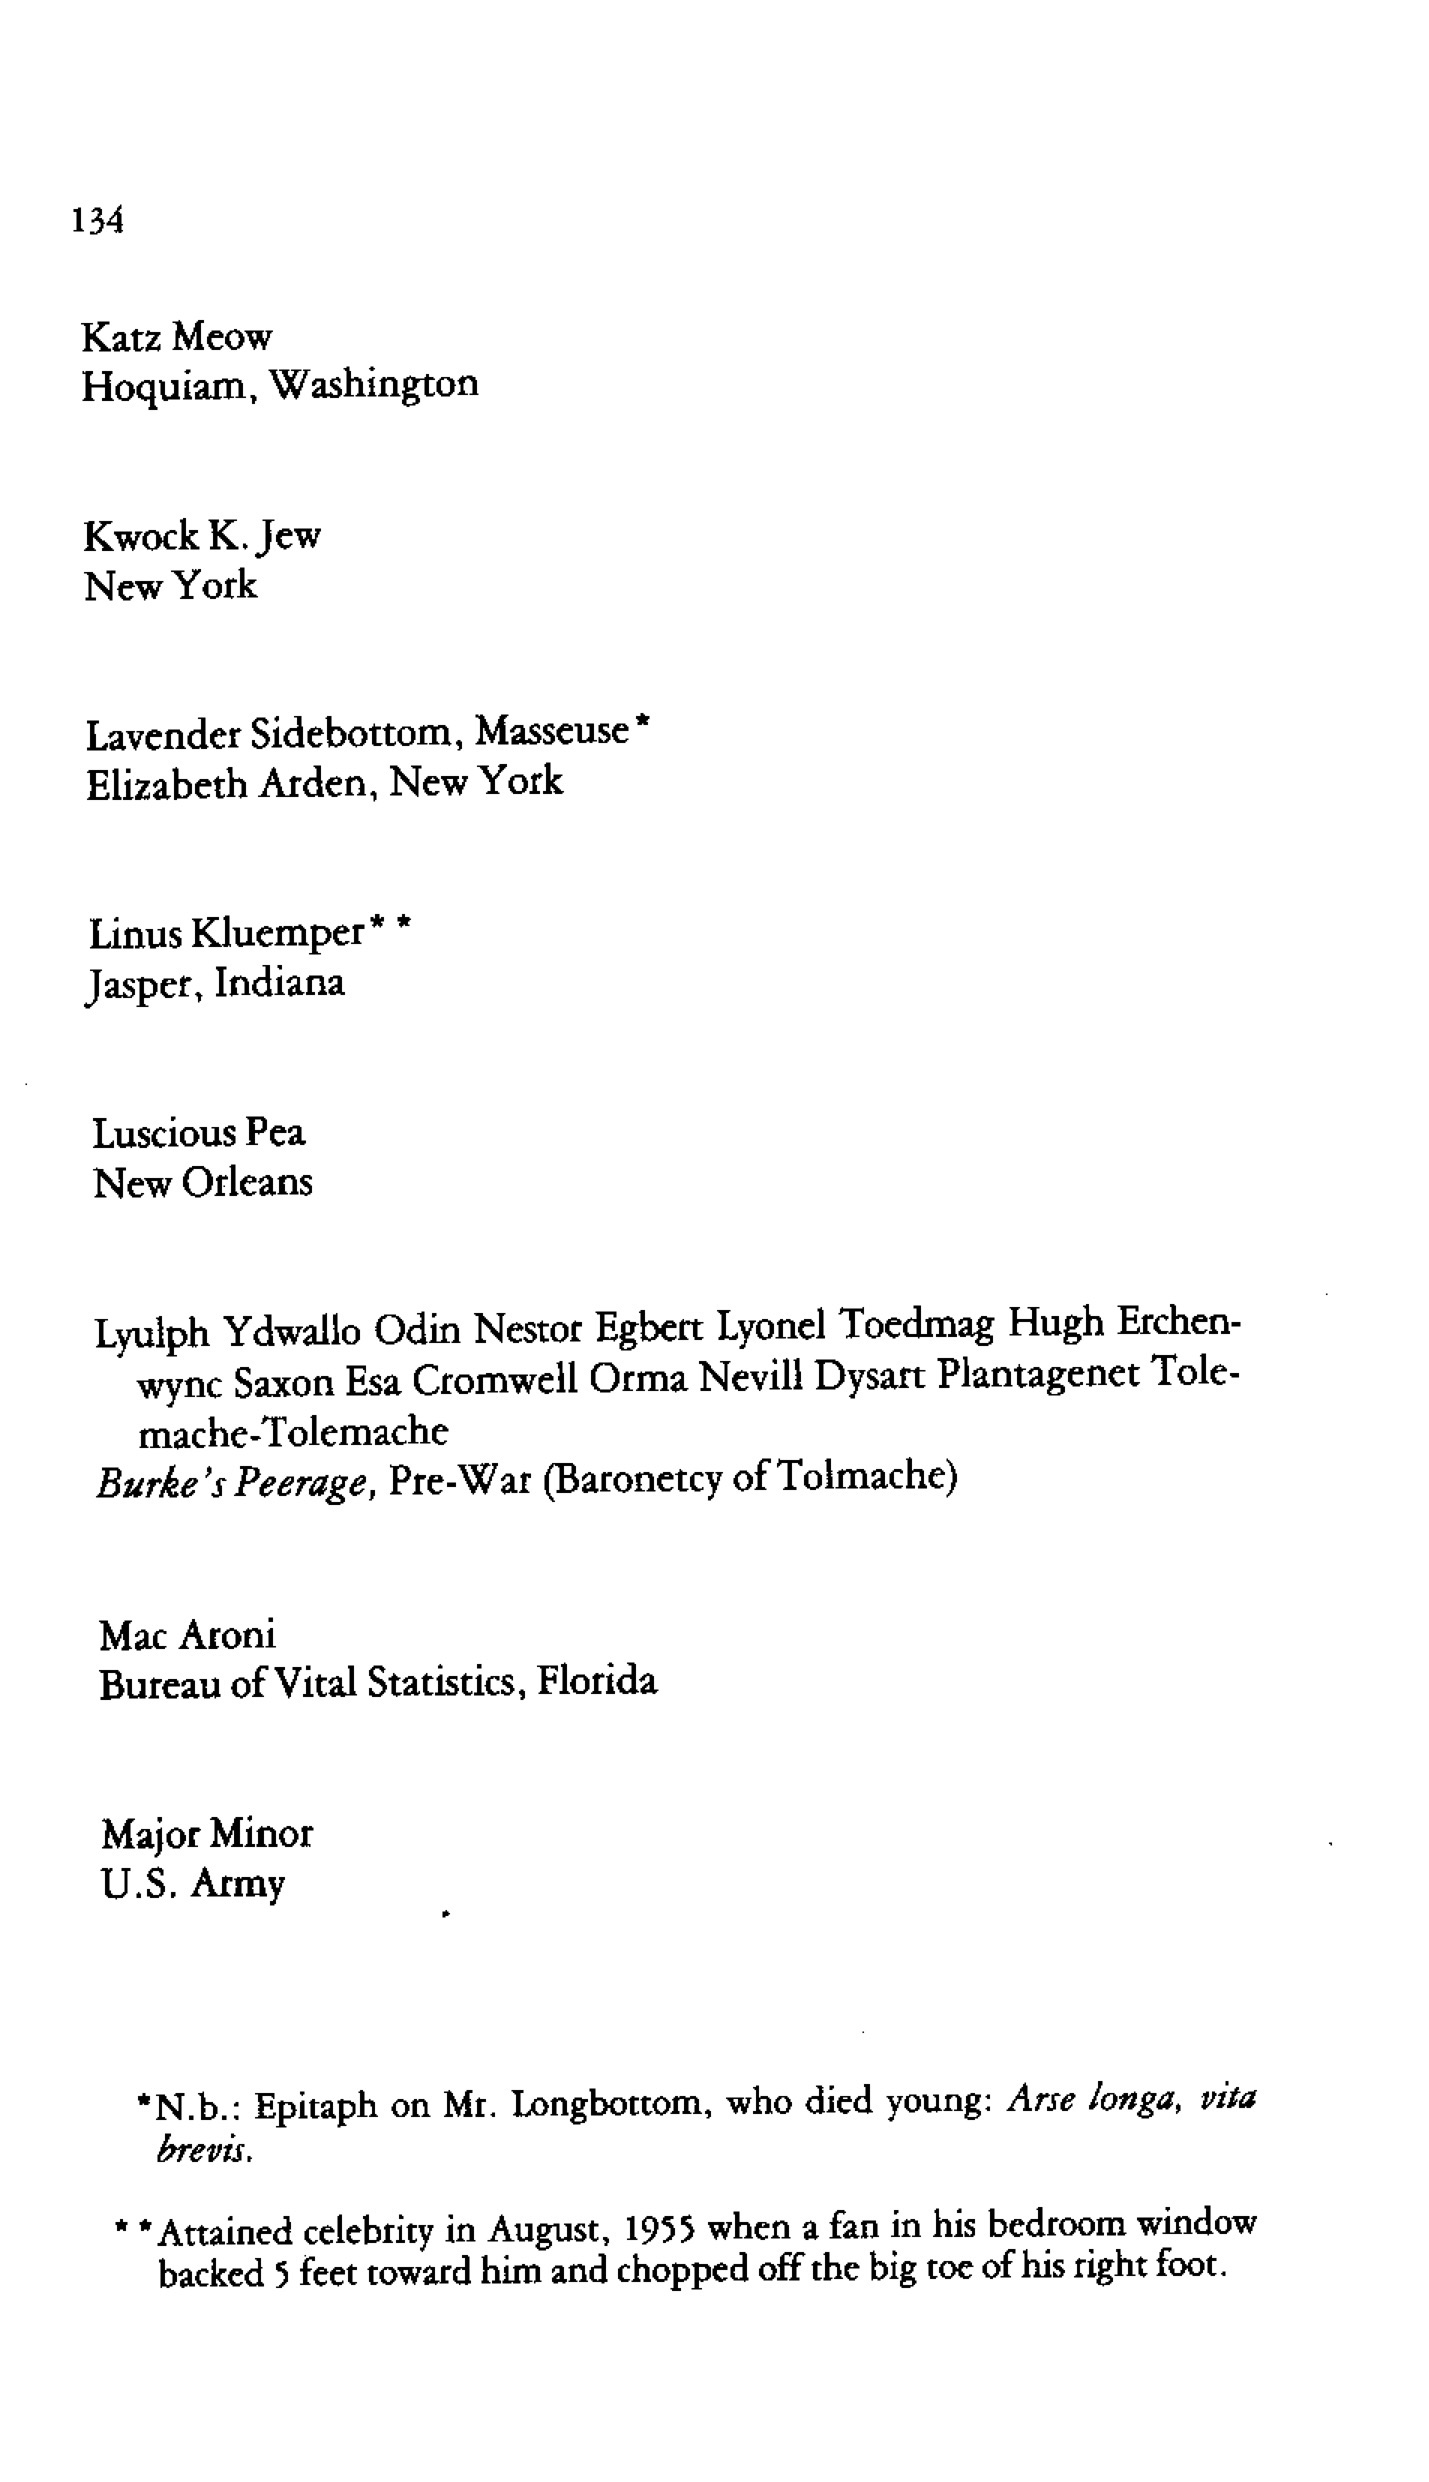 from our summer 1976 issue a list of remarkably silly names